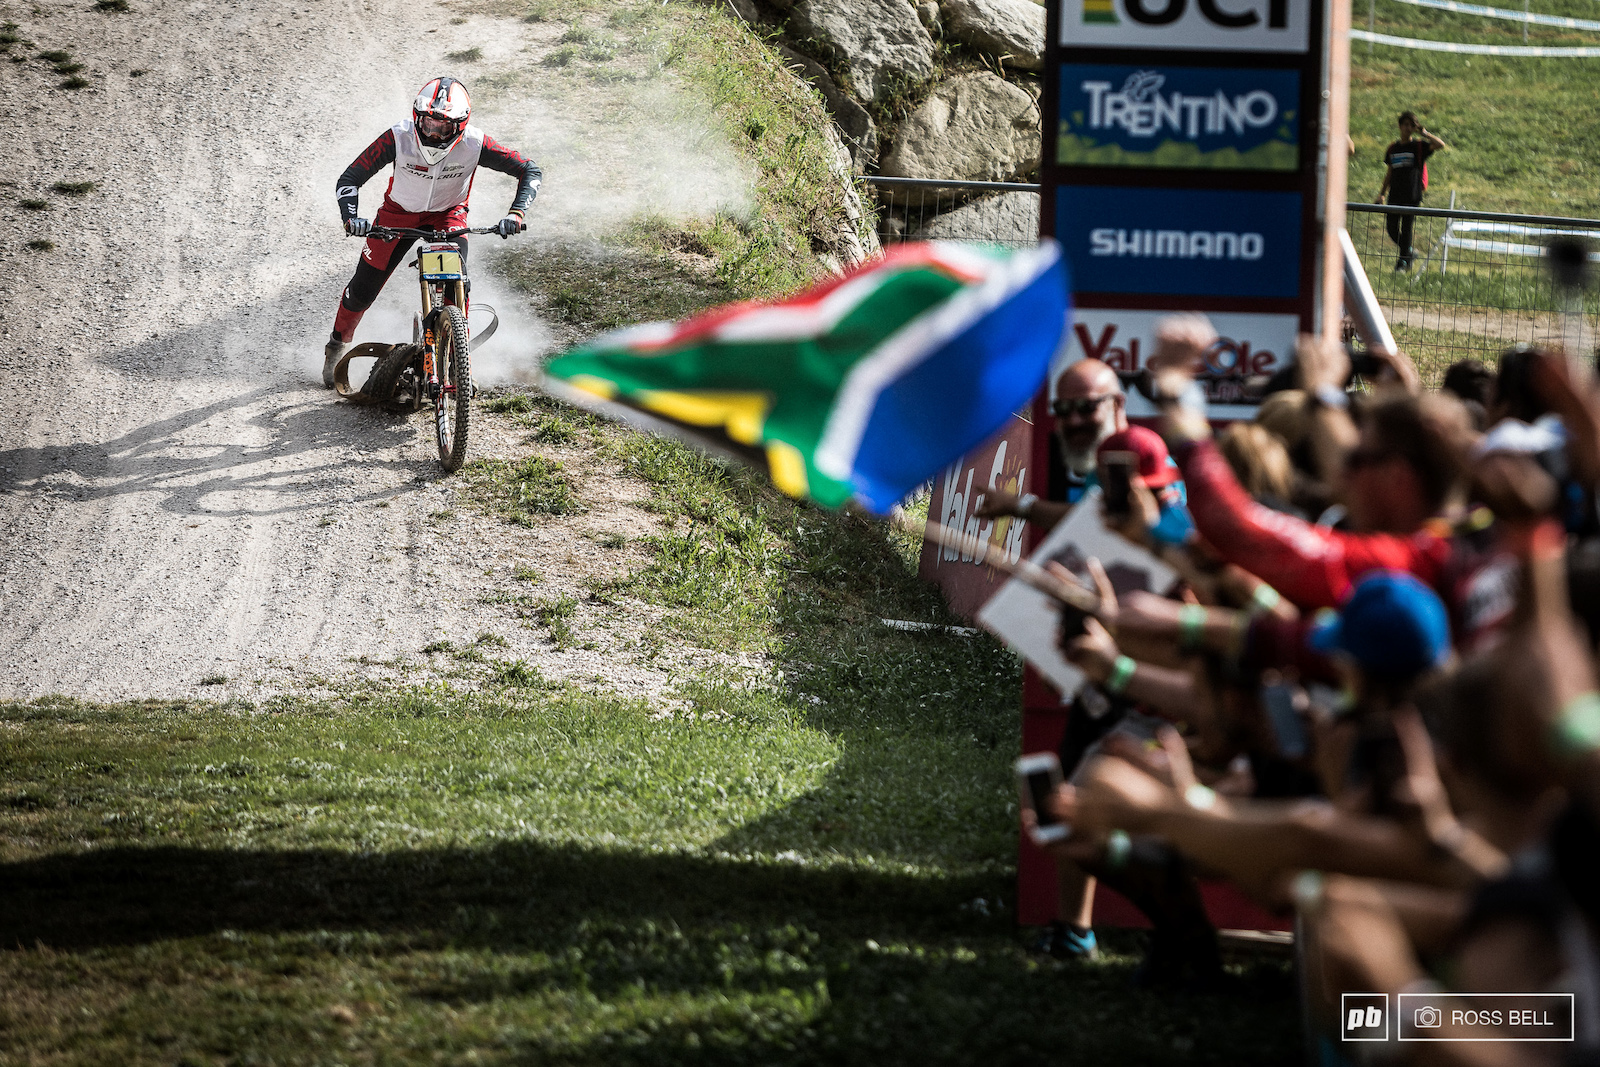 A bitter pill to swalllow Minnaar was riding with determination and passion all weekend.